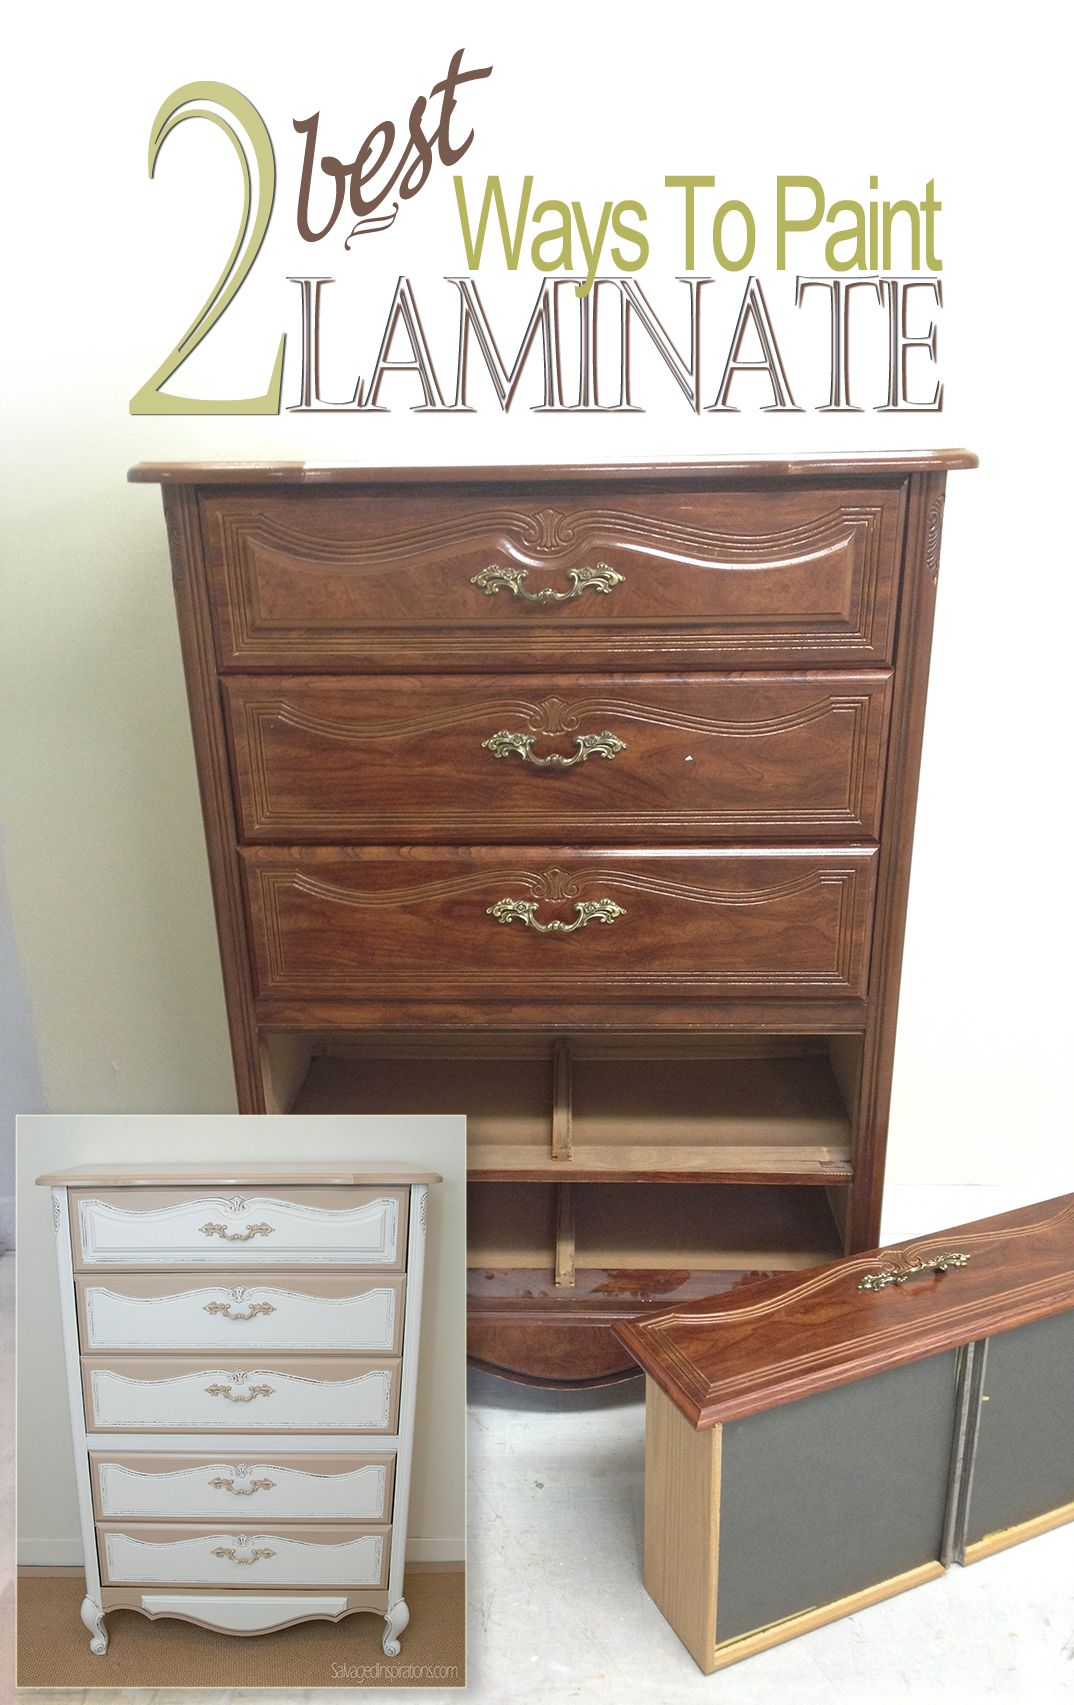 2 Best Ways To Paint Laminate Furniture Furniture